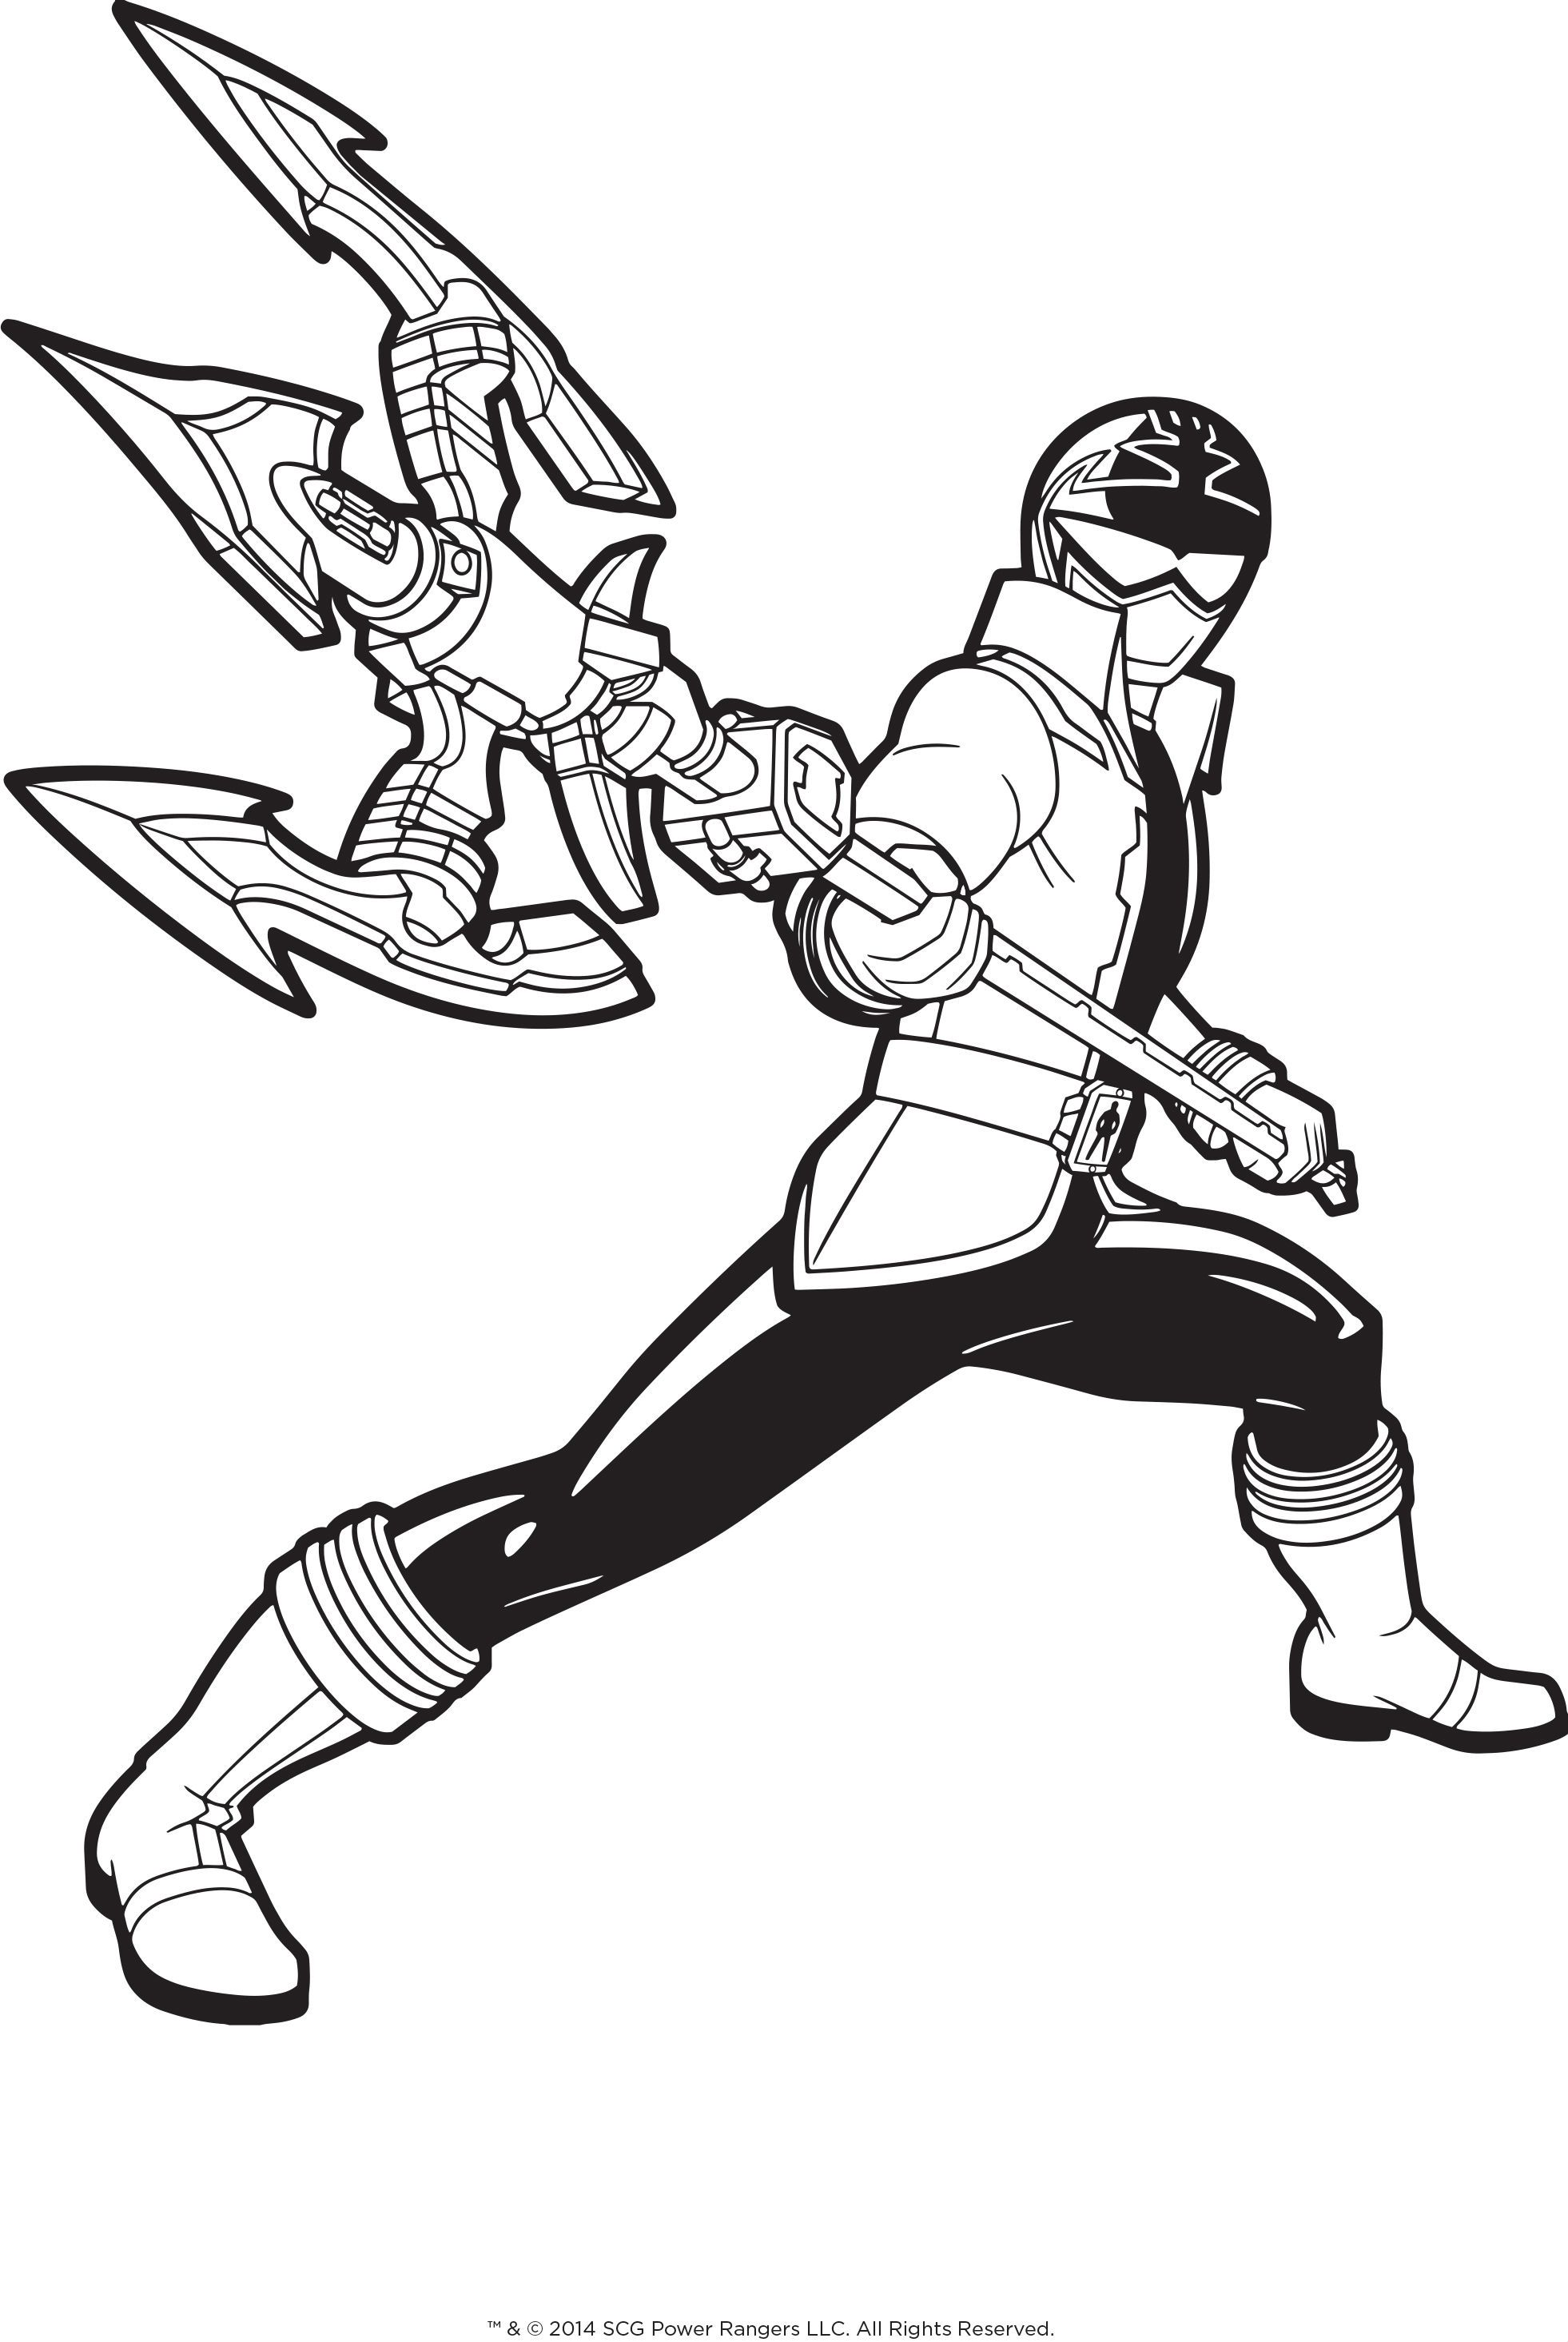 Pirate Power Ranger with trident coloring page for boys | Boys ...